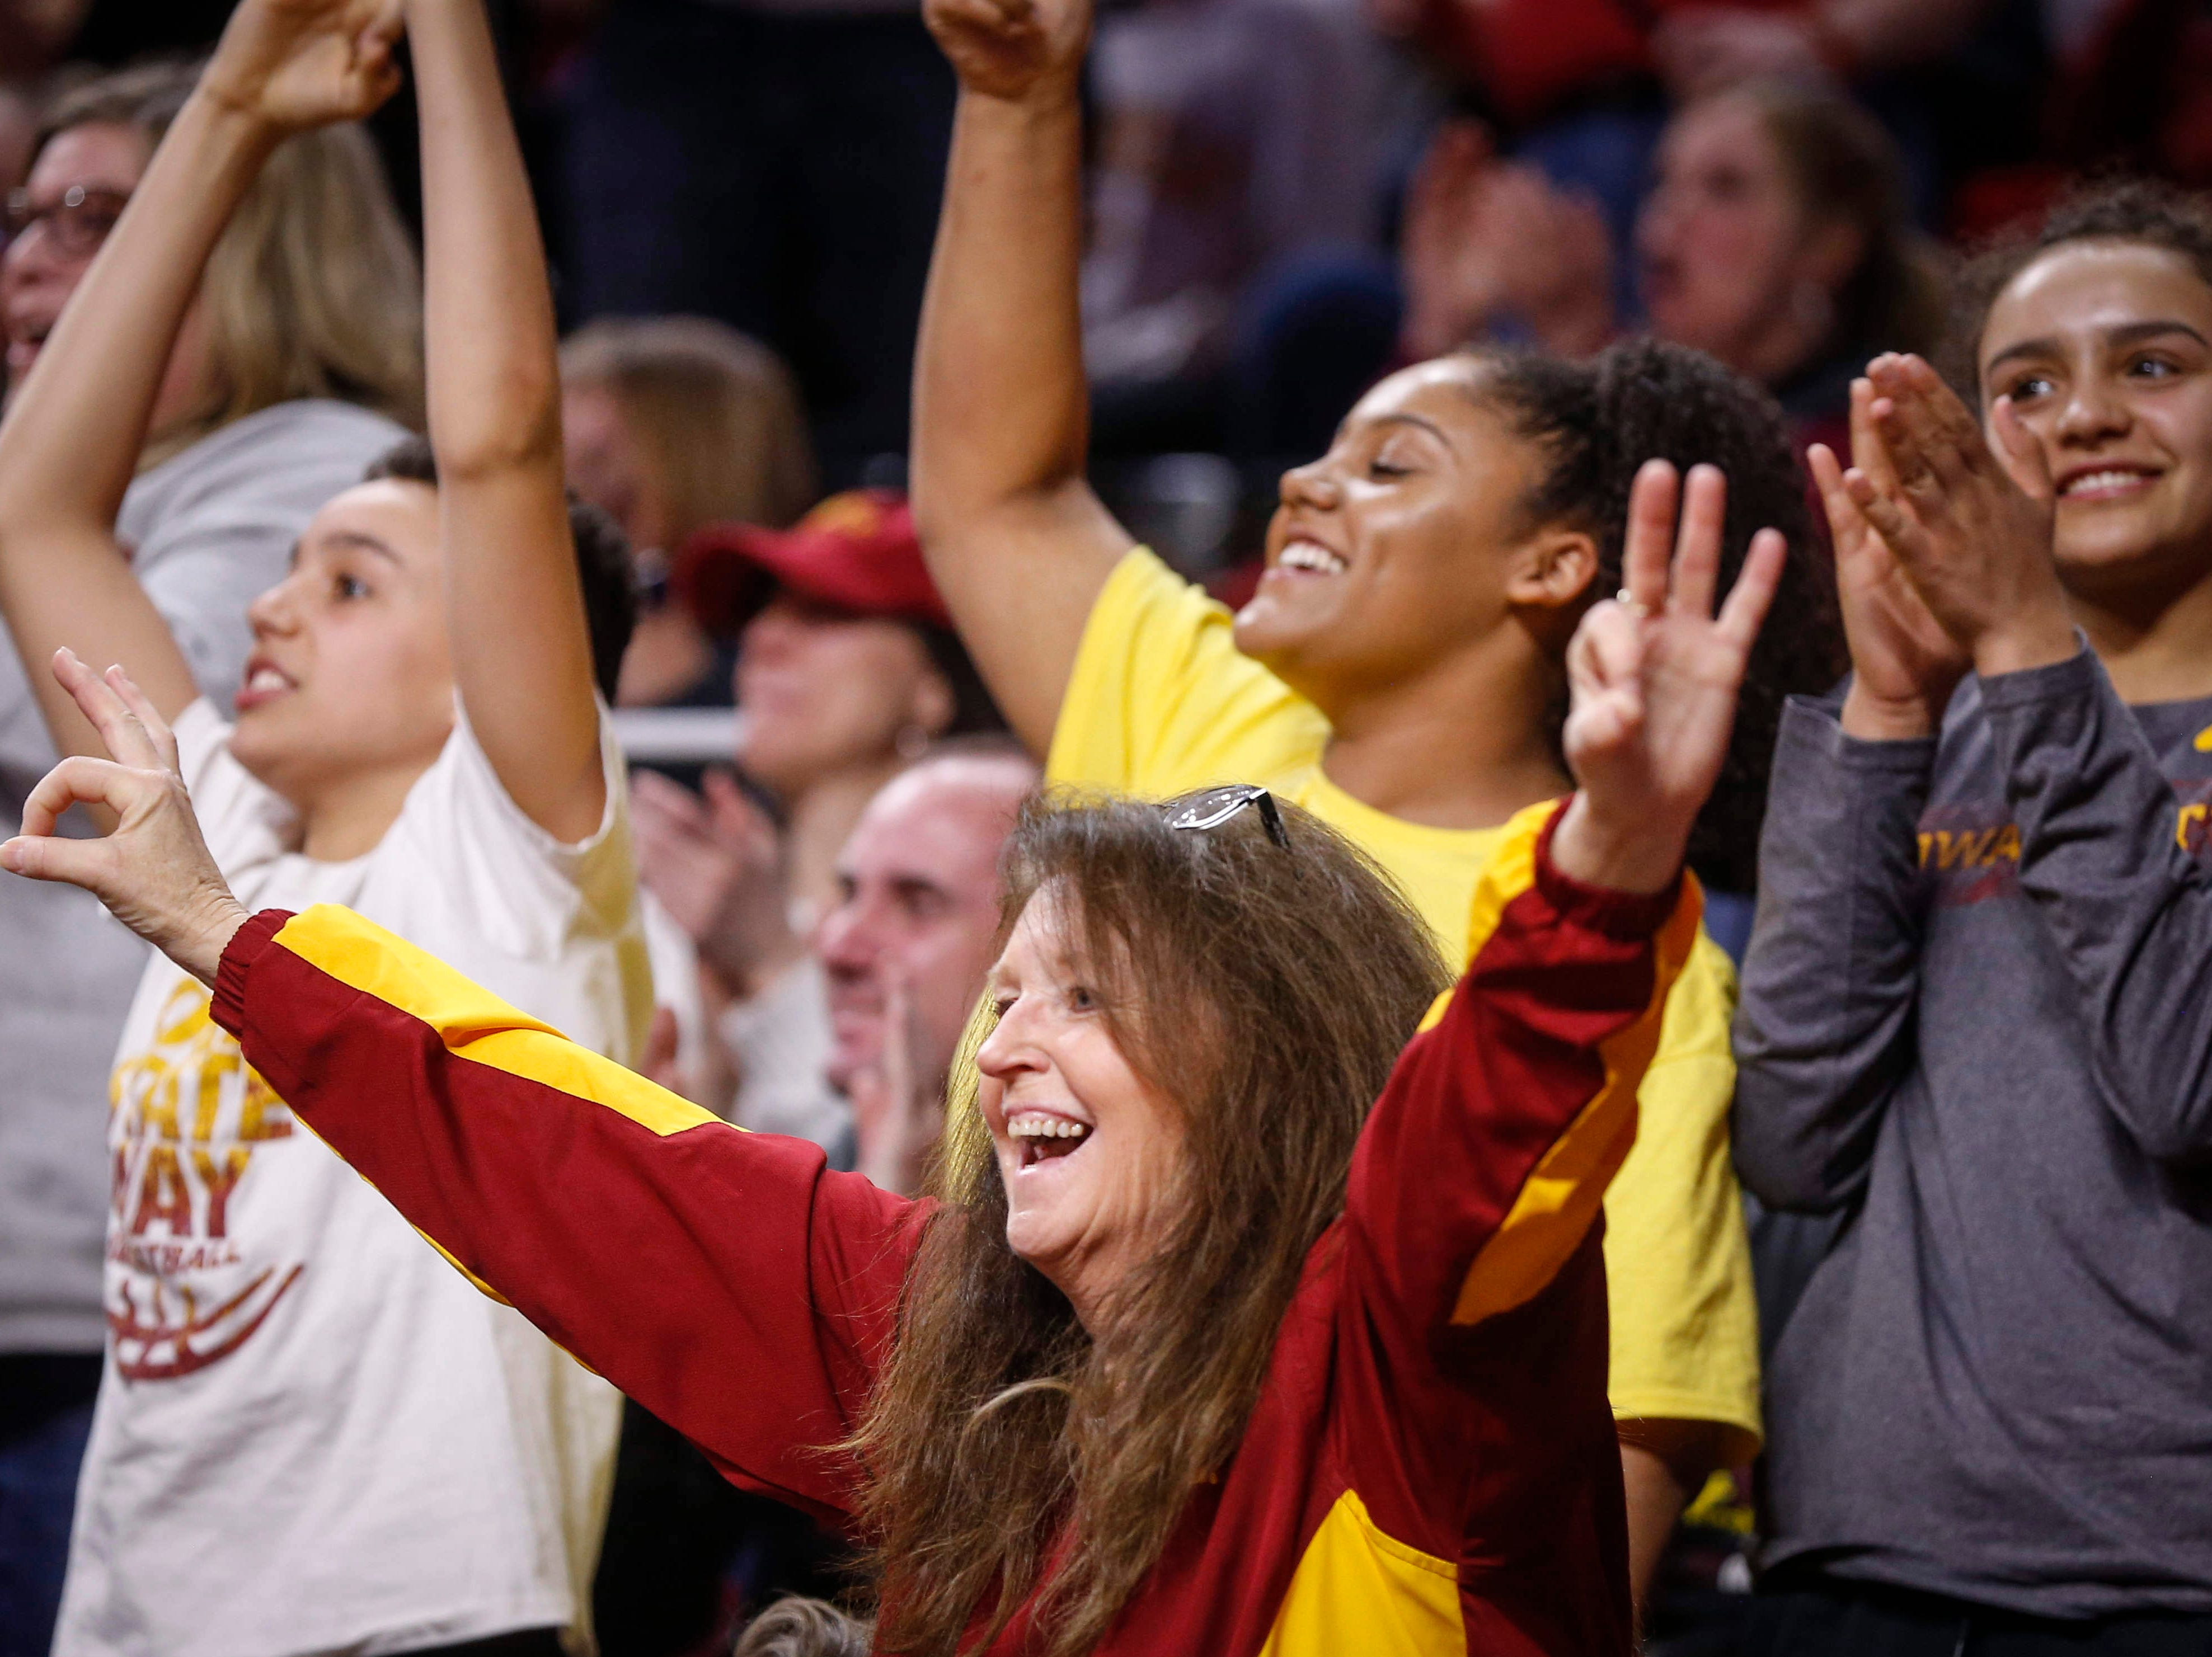 Iowa State fans cheer in the third quarter as the Cyclone women's basketball team extended its lead over New Mexico State on Saturday, March 23, 2019, at Hilton Coliseum in Ames.